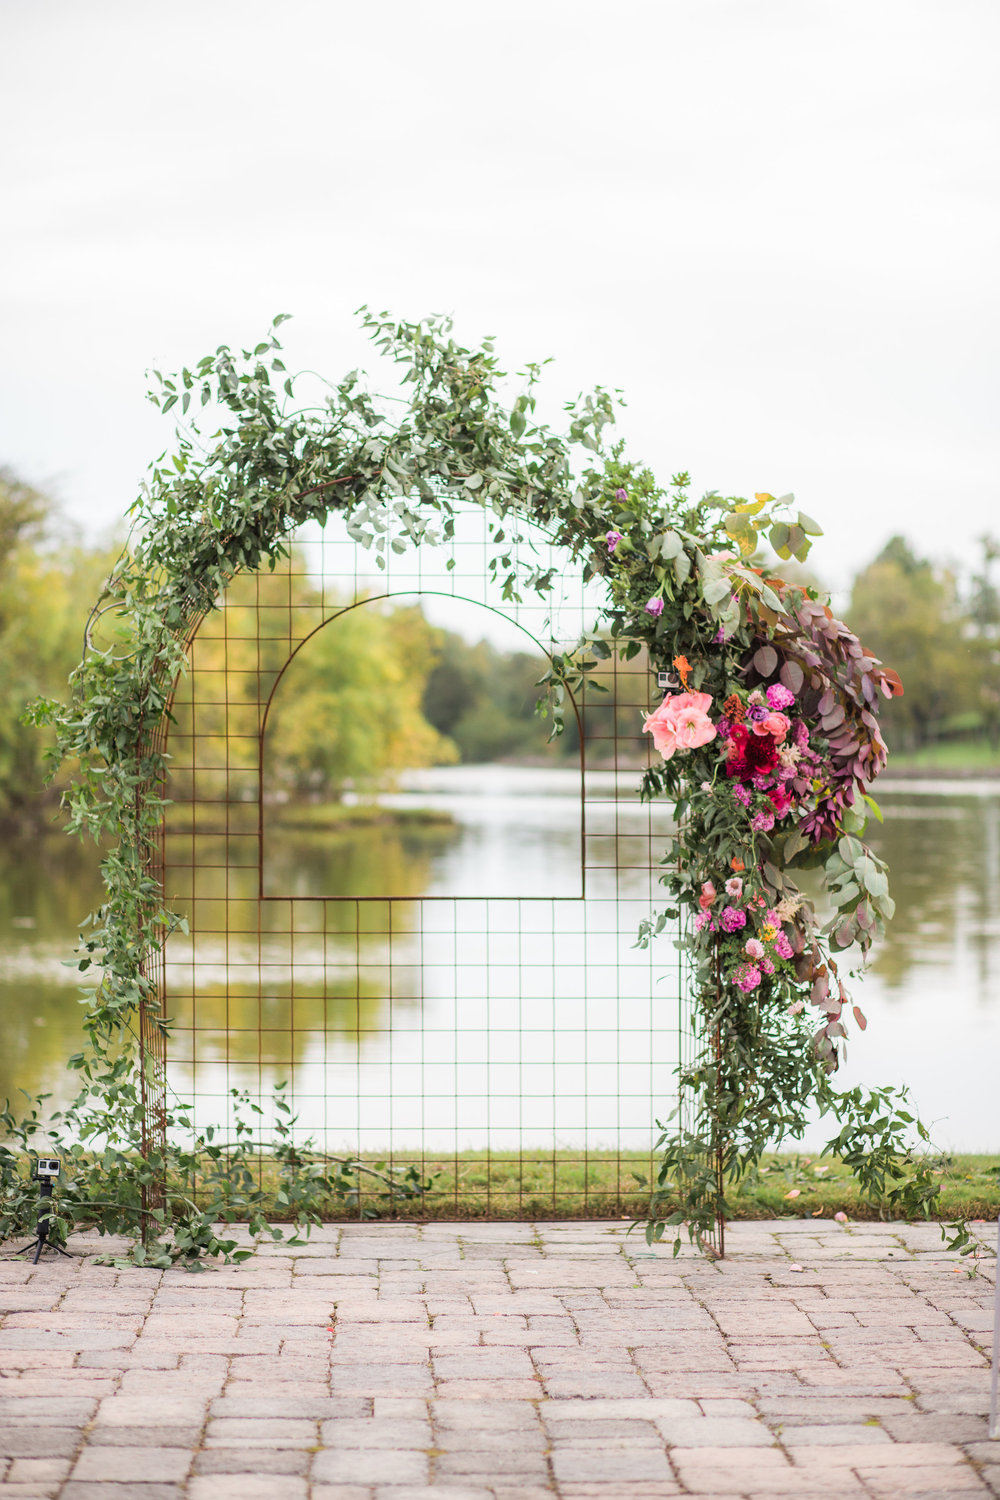 $1200 - installationLots of greenery with a cluster of many premium focal blooms, accessory blooms, and greenery trailing down the side of the arch.Finishes: Metal arch rental